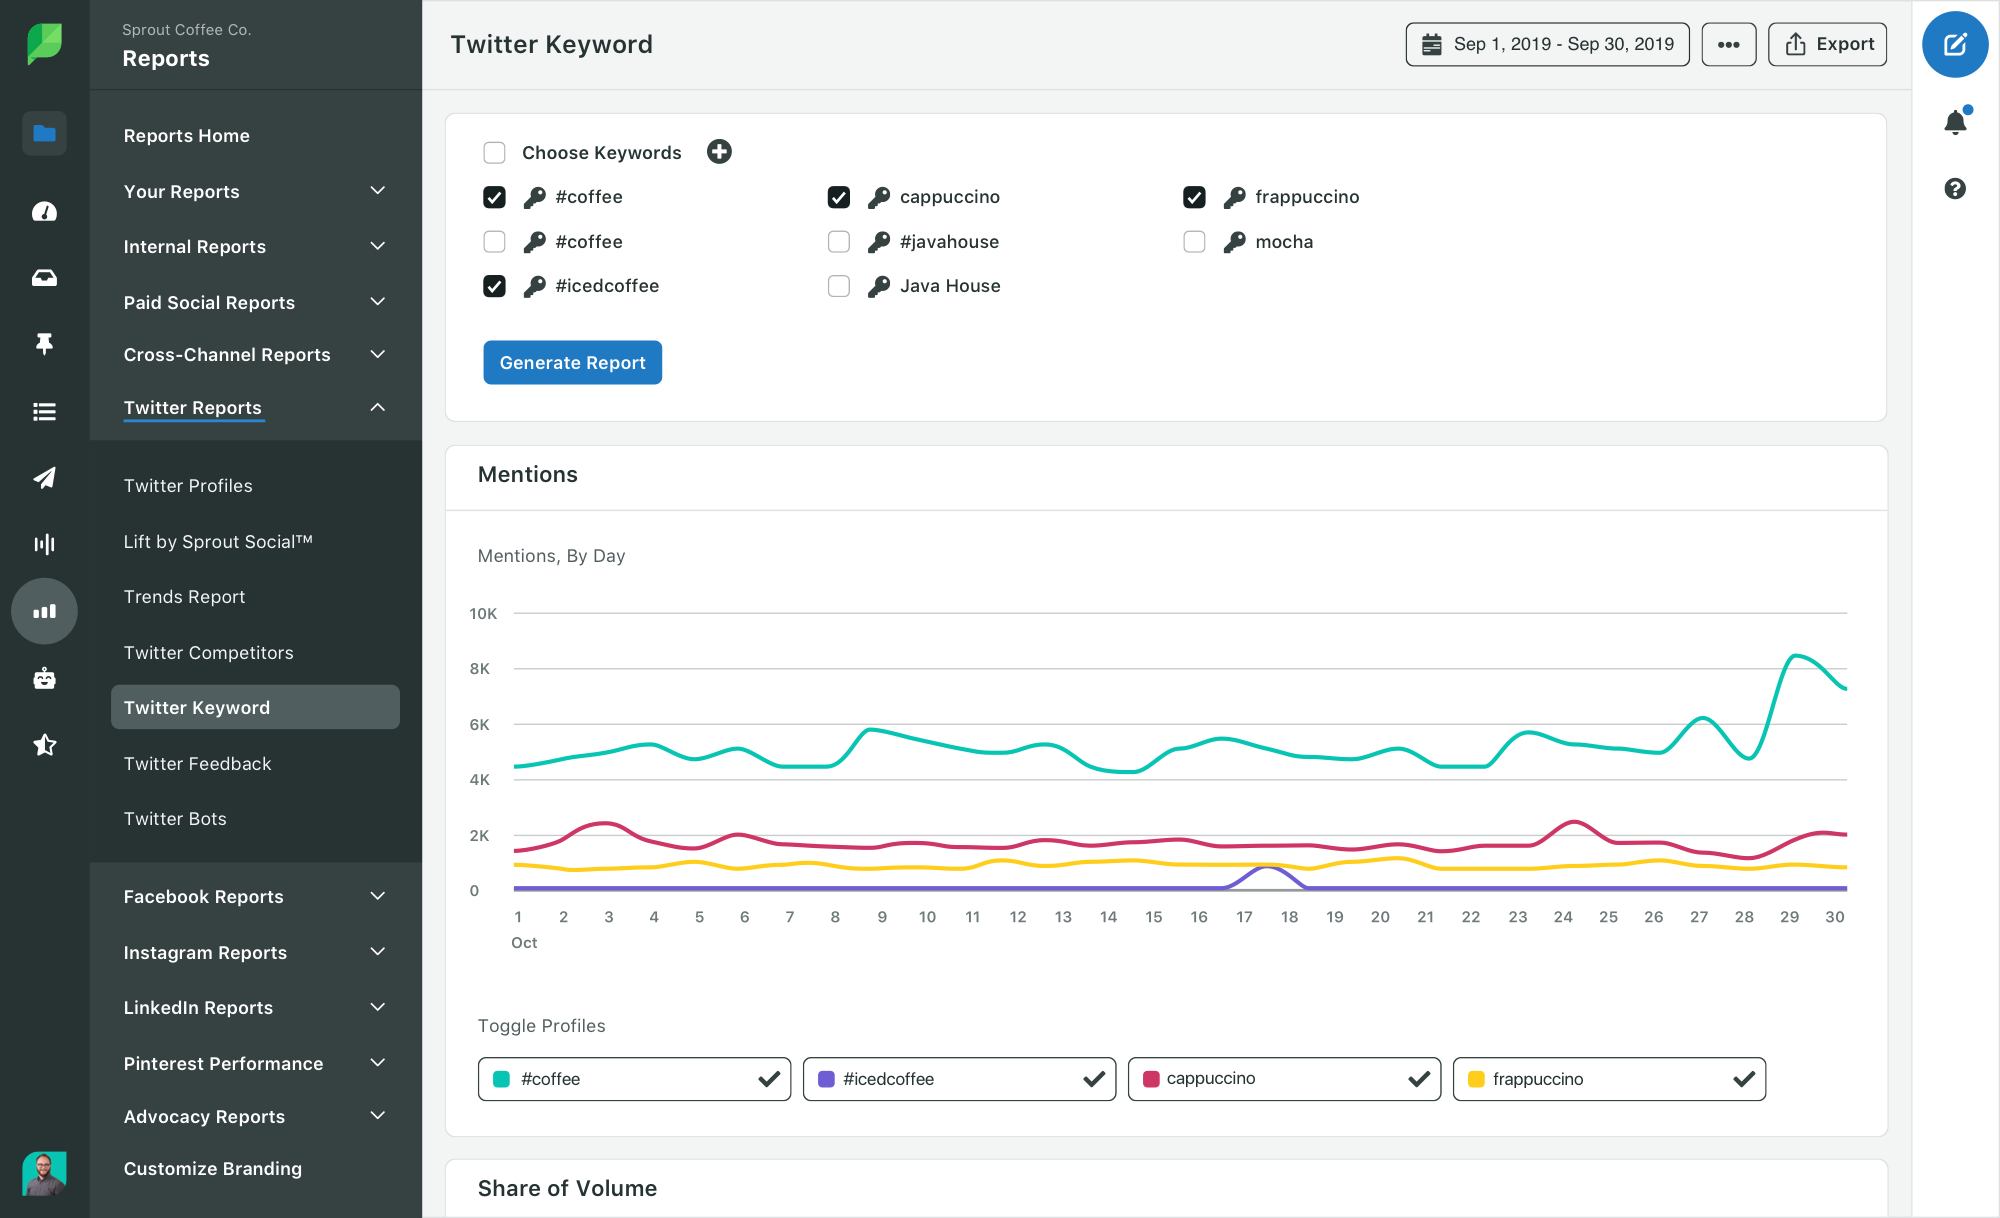 Sprout Twitter keyword report